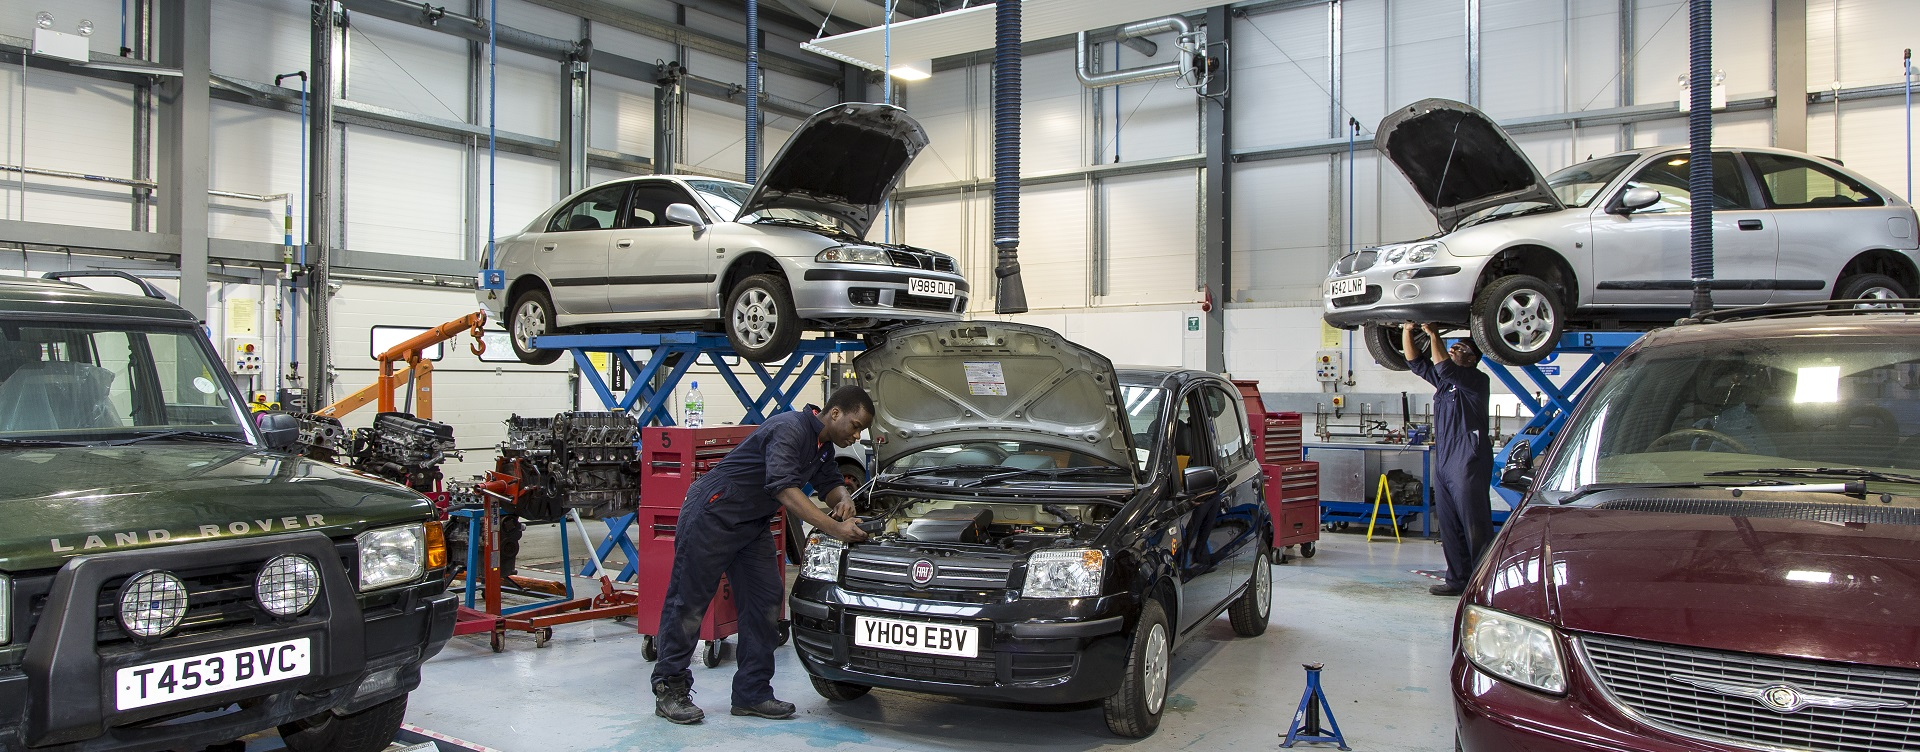 Skoda Car Service Technicians Explain About Putting The Wrong Fuel in Your Vehicle